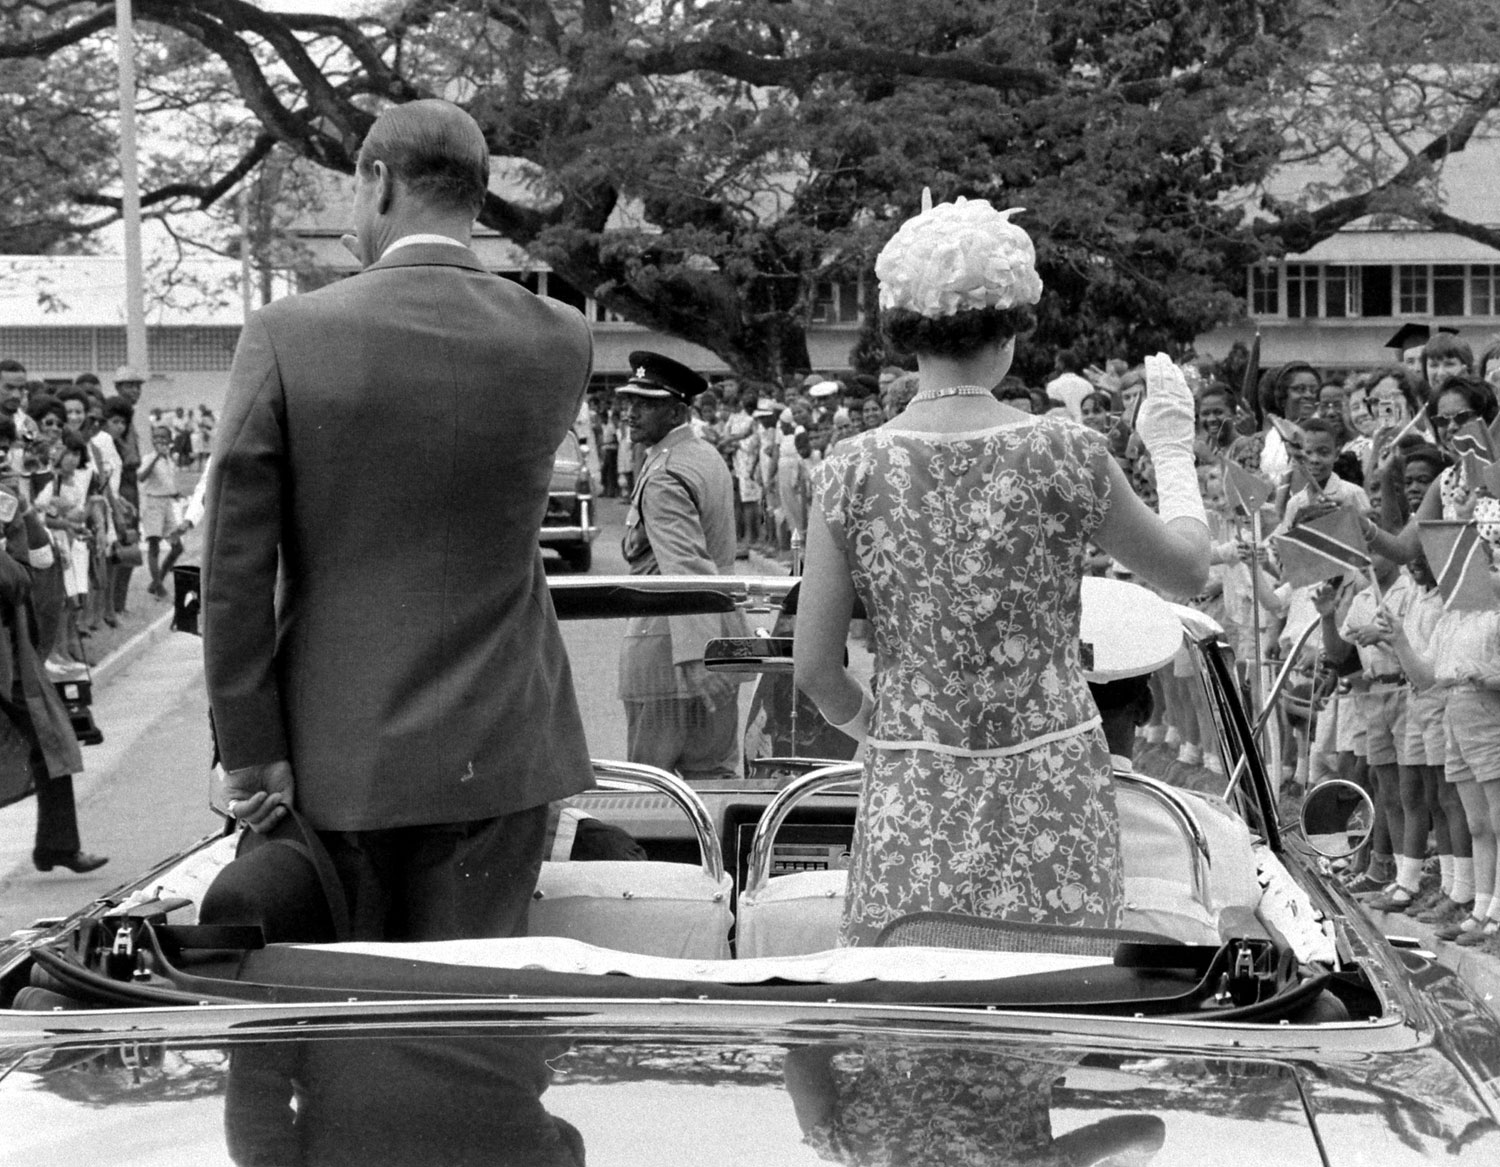 Queen Elizabeth II (right) and Prince Philip on a tour of Trinidad and Tobago, 1966.